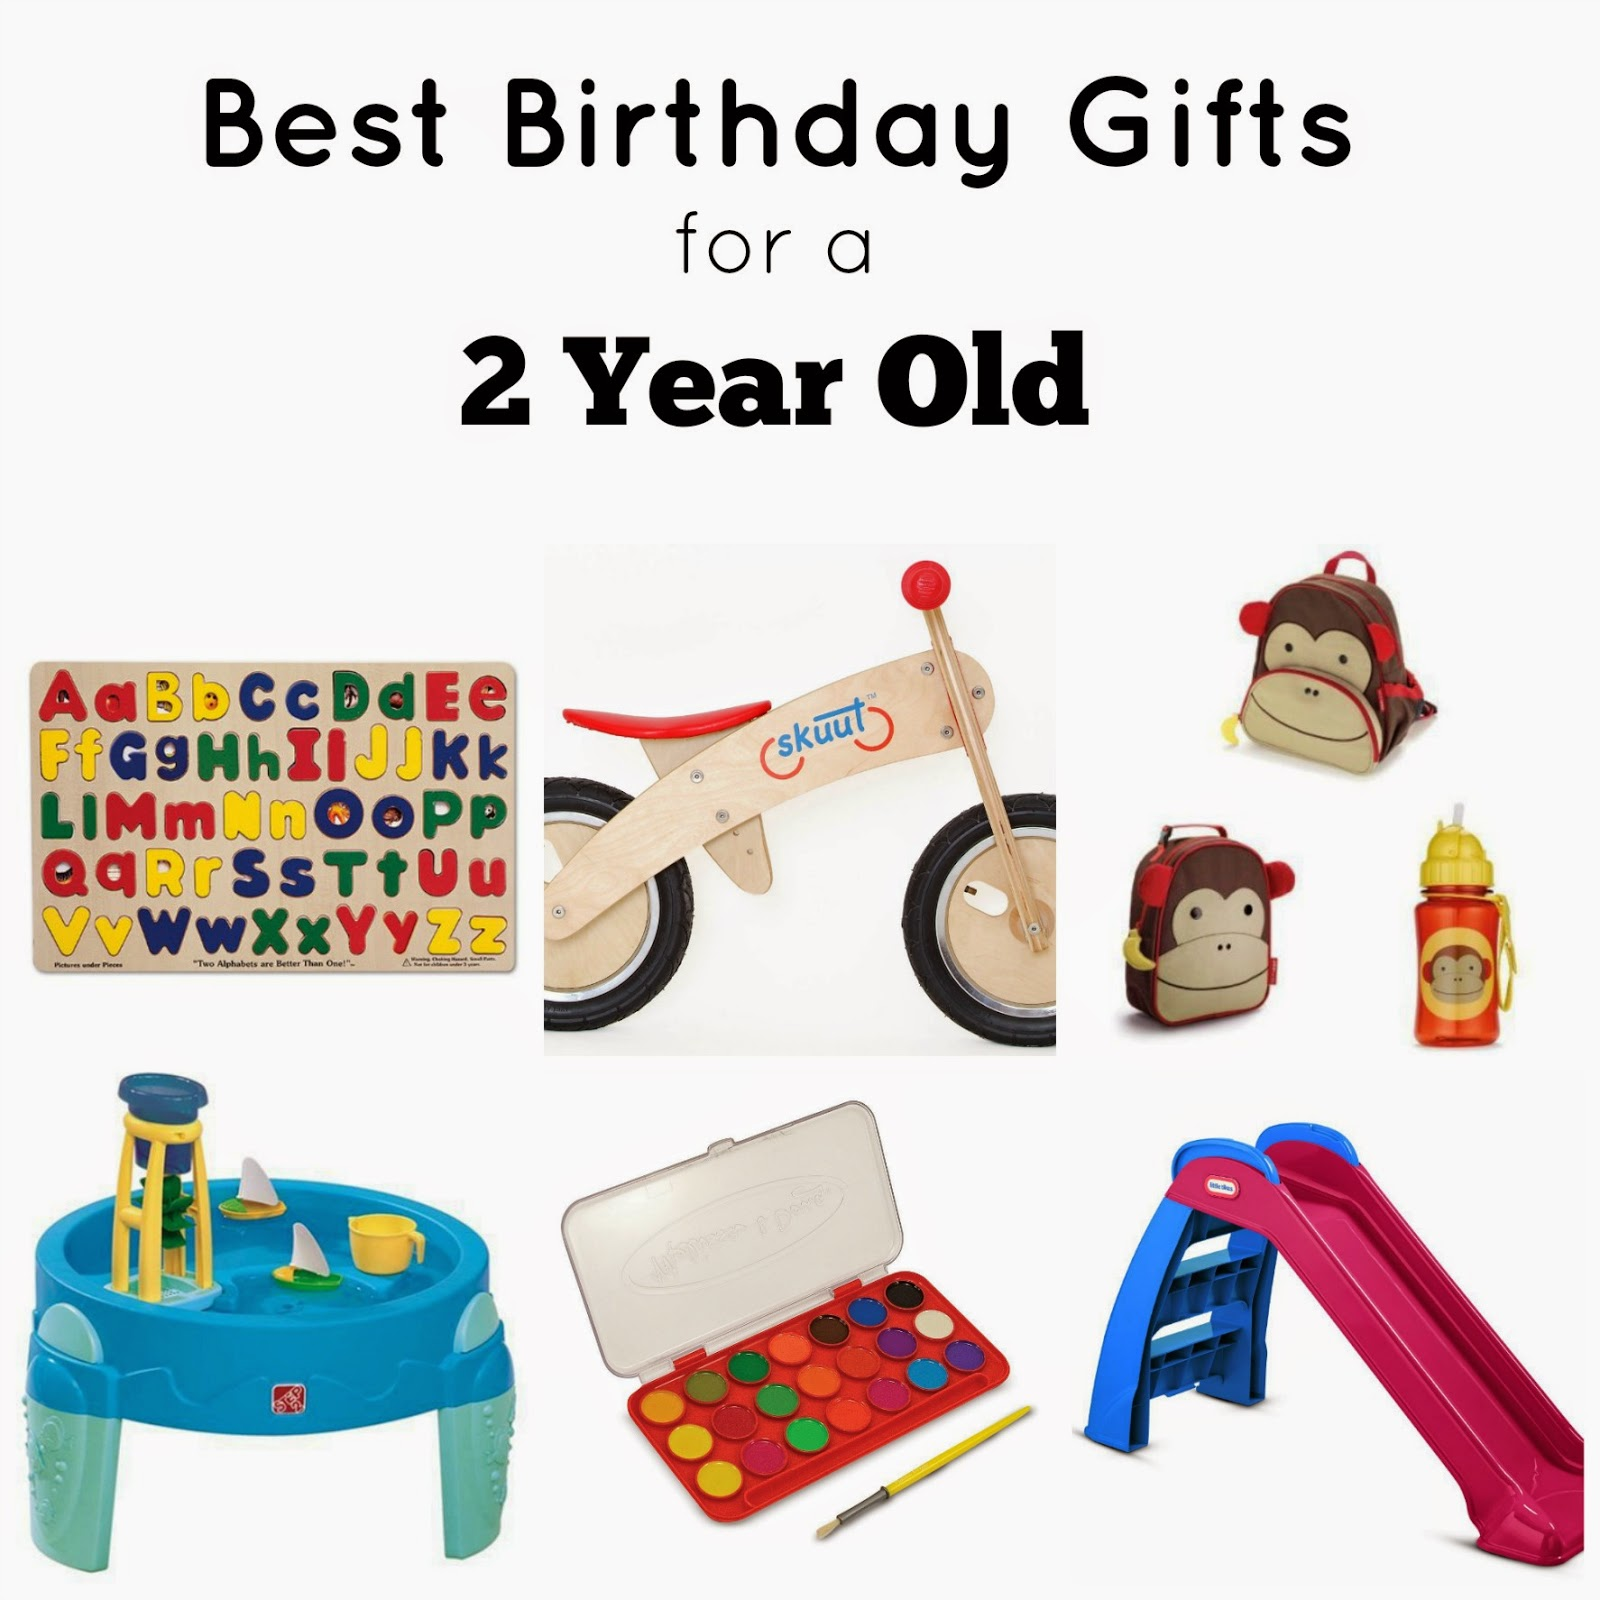 Our Life on a Budget...: Best Birthday Gifts for a 2 Year Old